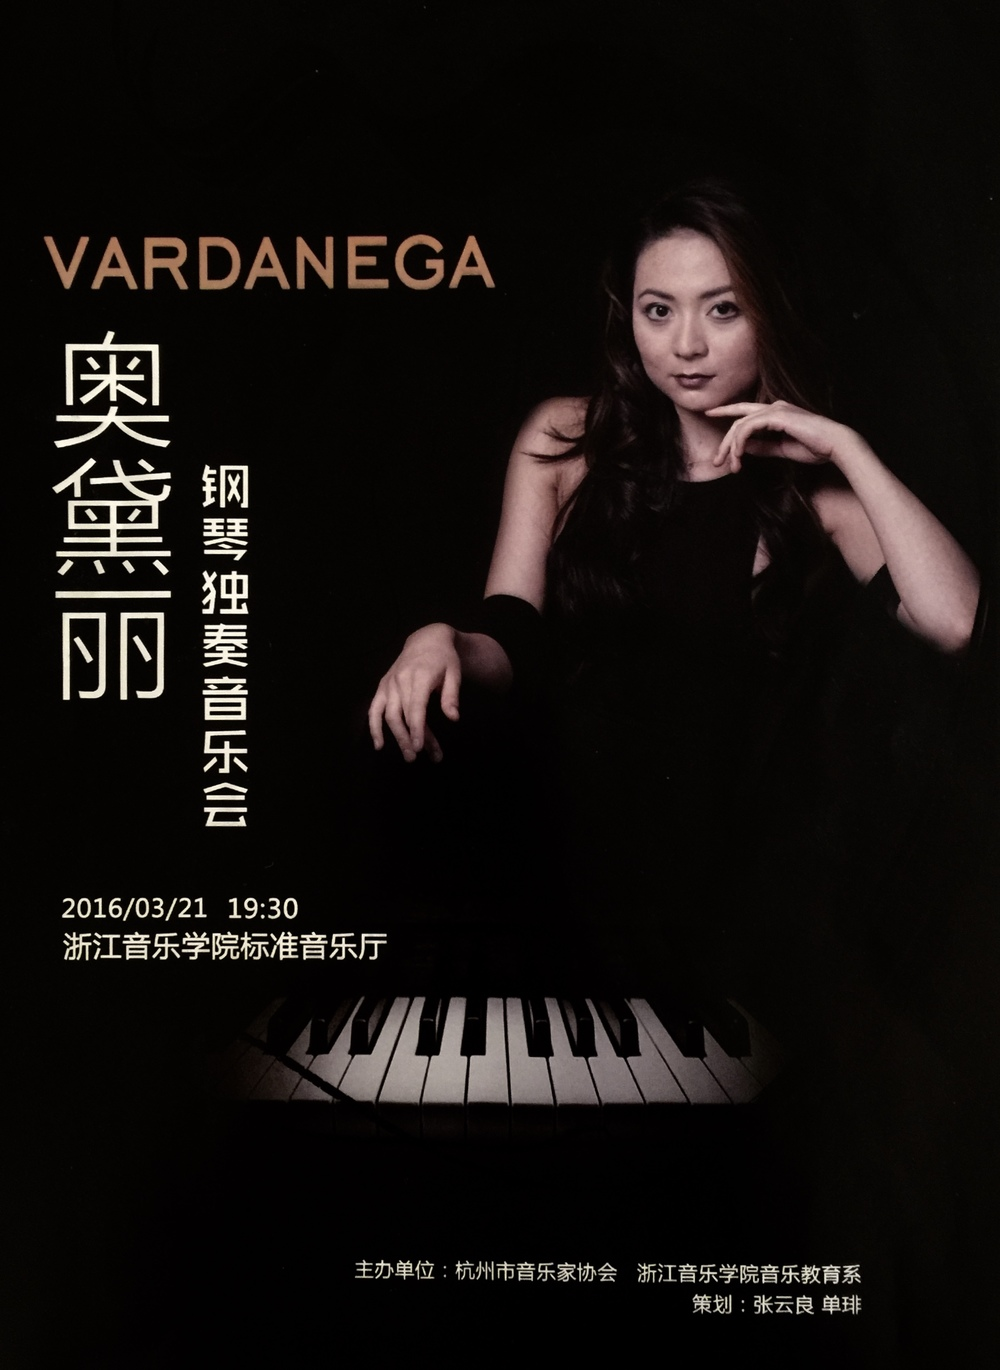 Publicity Poster for Vardanega's Hangzhou Concerts on 3/21/2016 and 3/22/2016